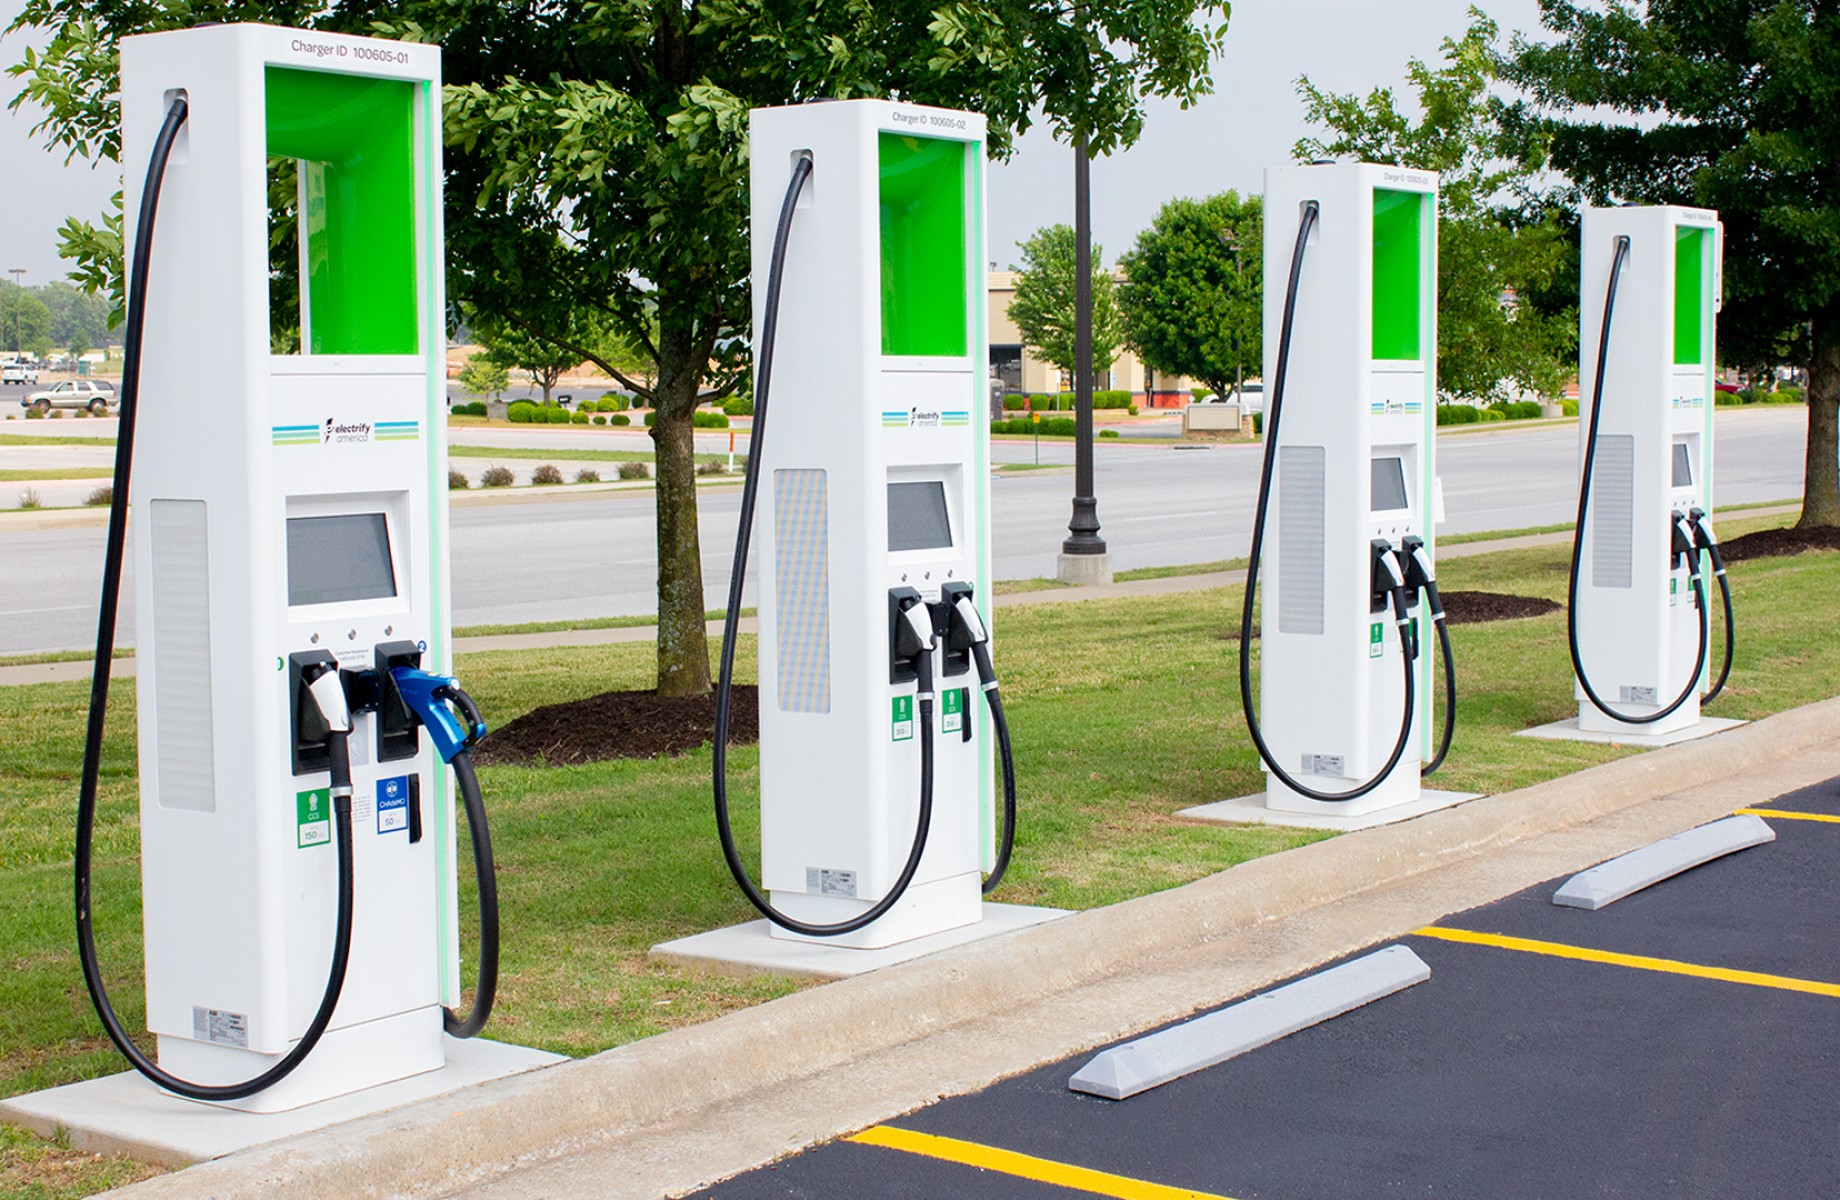 Electric-vehicle charging stations are showing up at suburban shopping centers and in parking lots at retailers such as Walmart. (Walmart)